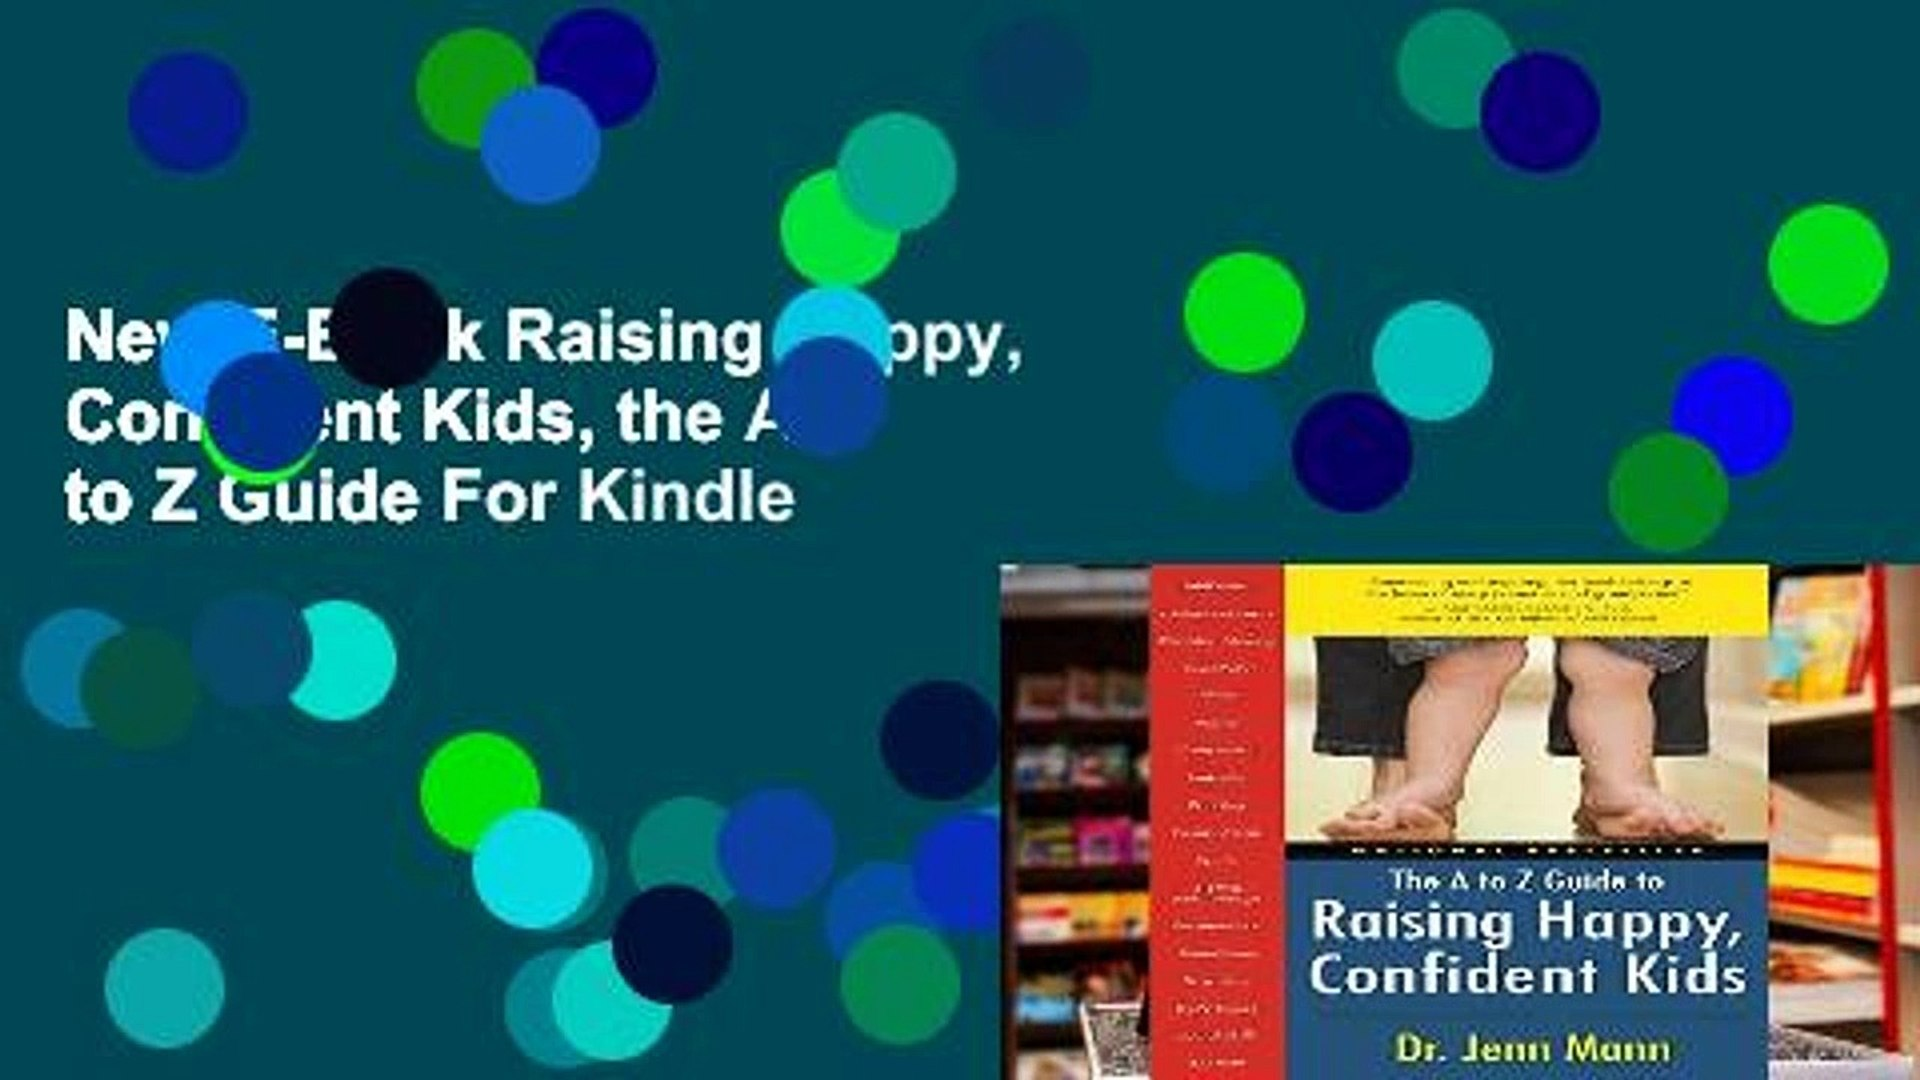 The A to Z Guide to Raising Happy Confident Kids